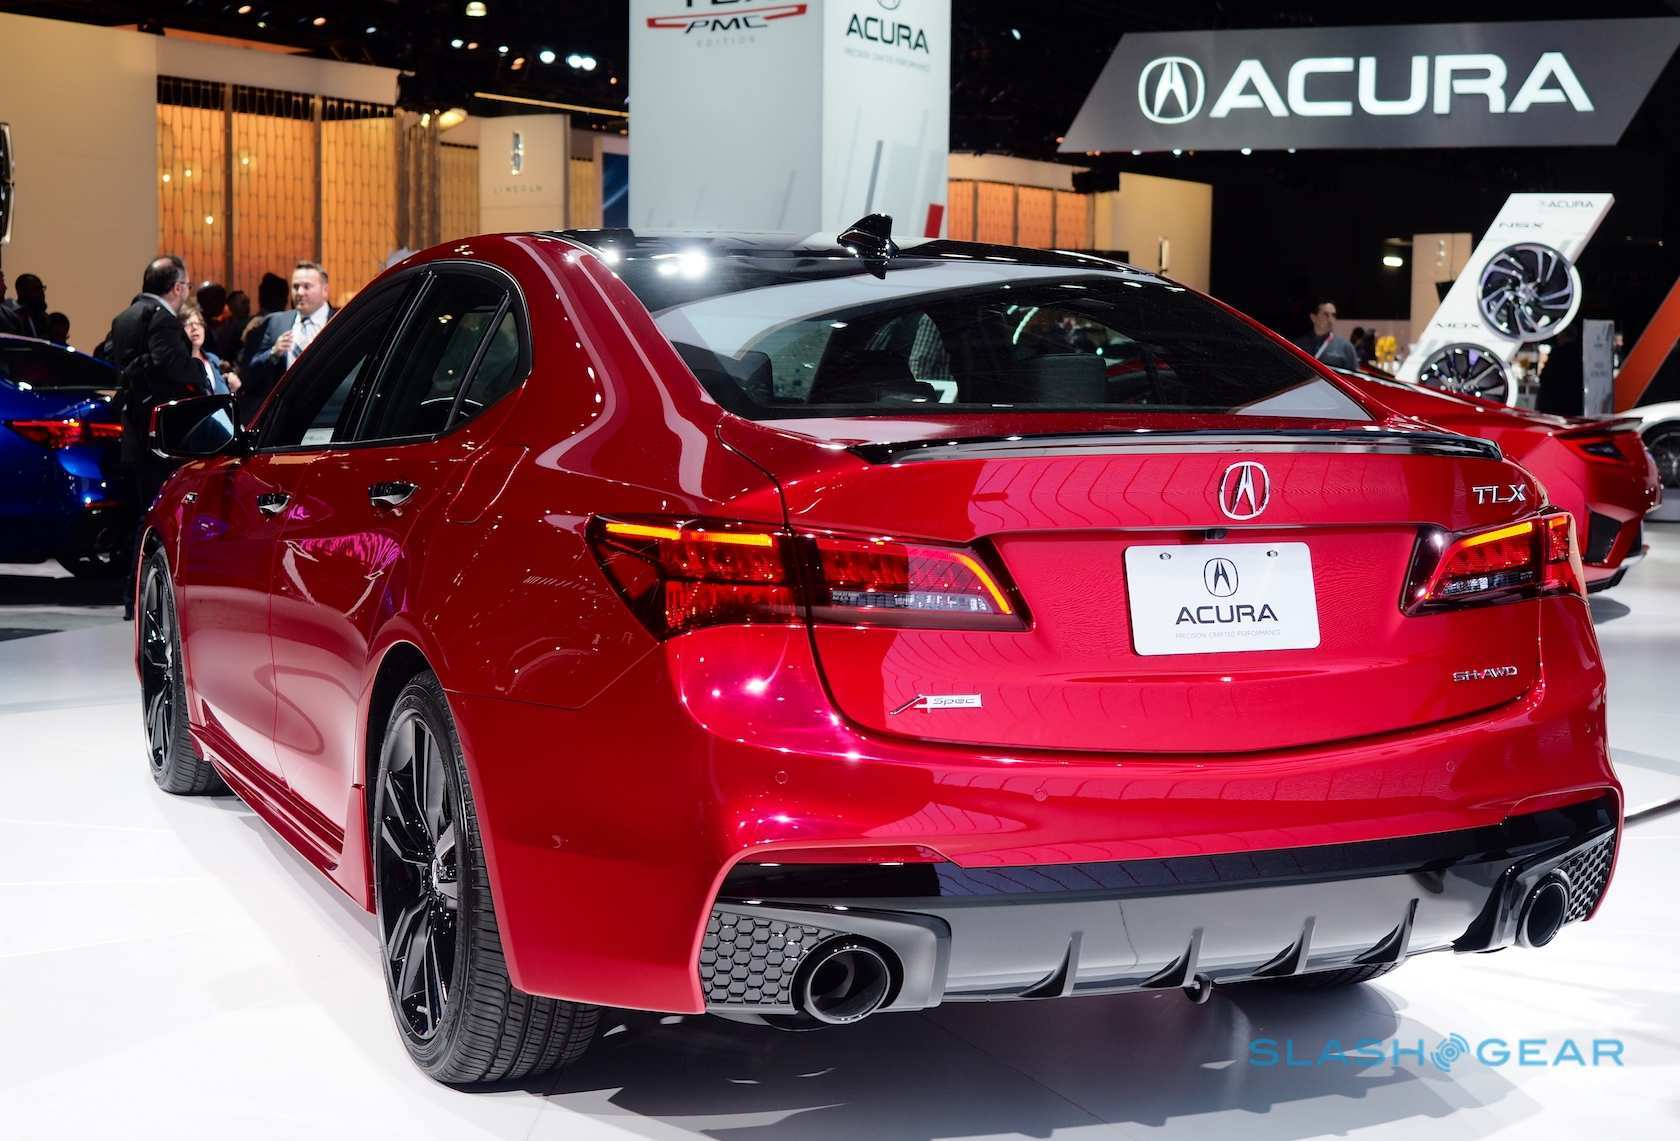 43 Best Review 2020 Acura Pmc Edition Style for 2020 Acura Pmc Edition